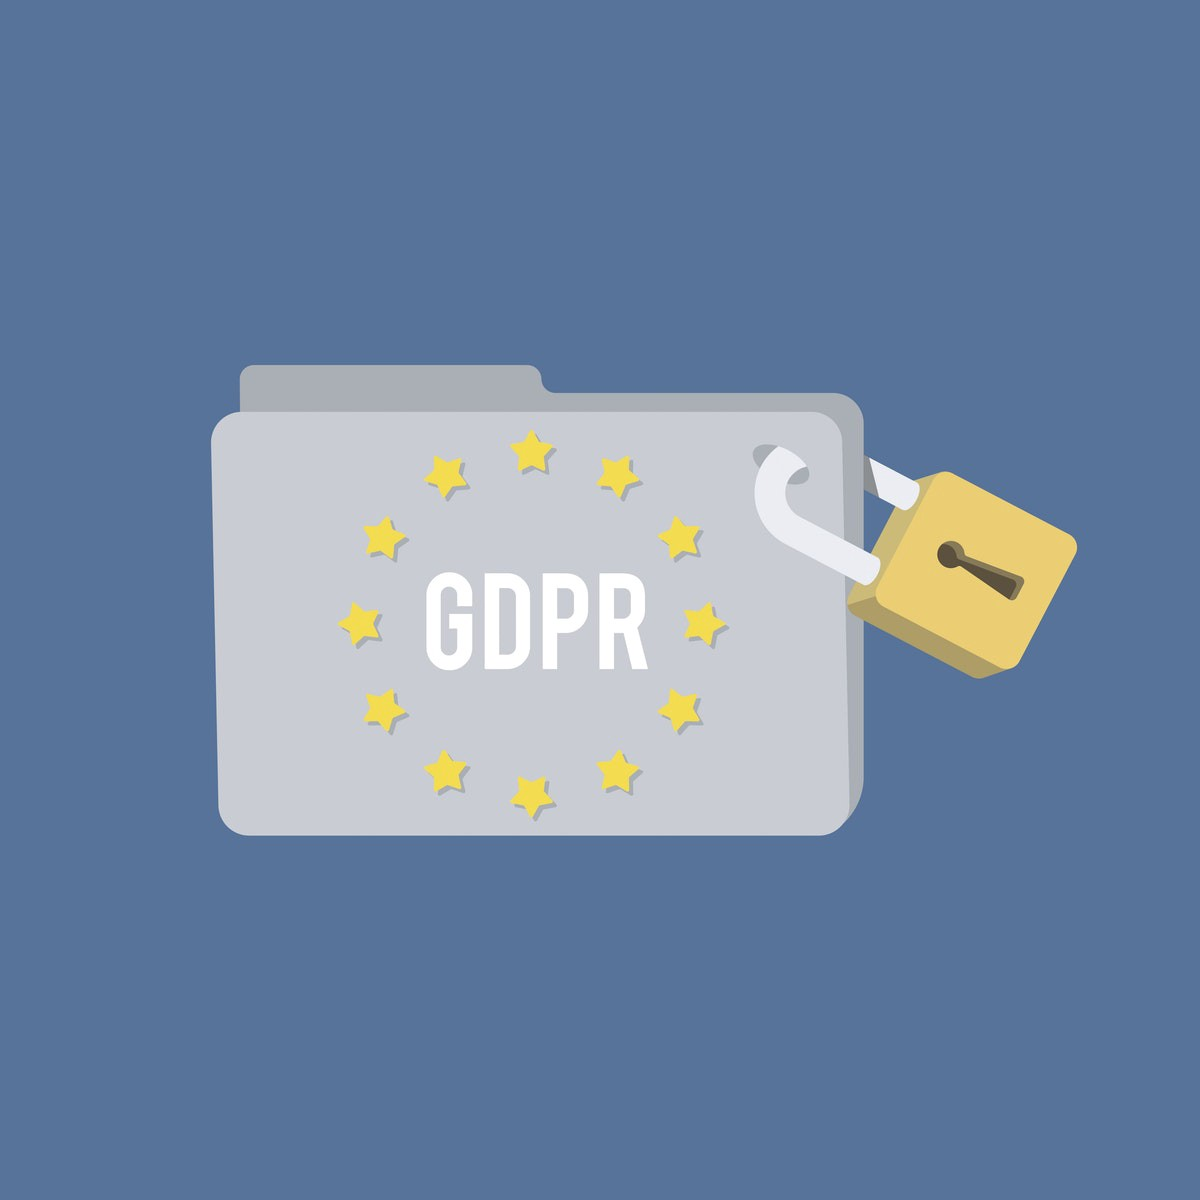 Next Steps in GDPR: What's to Come in 2019? - By